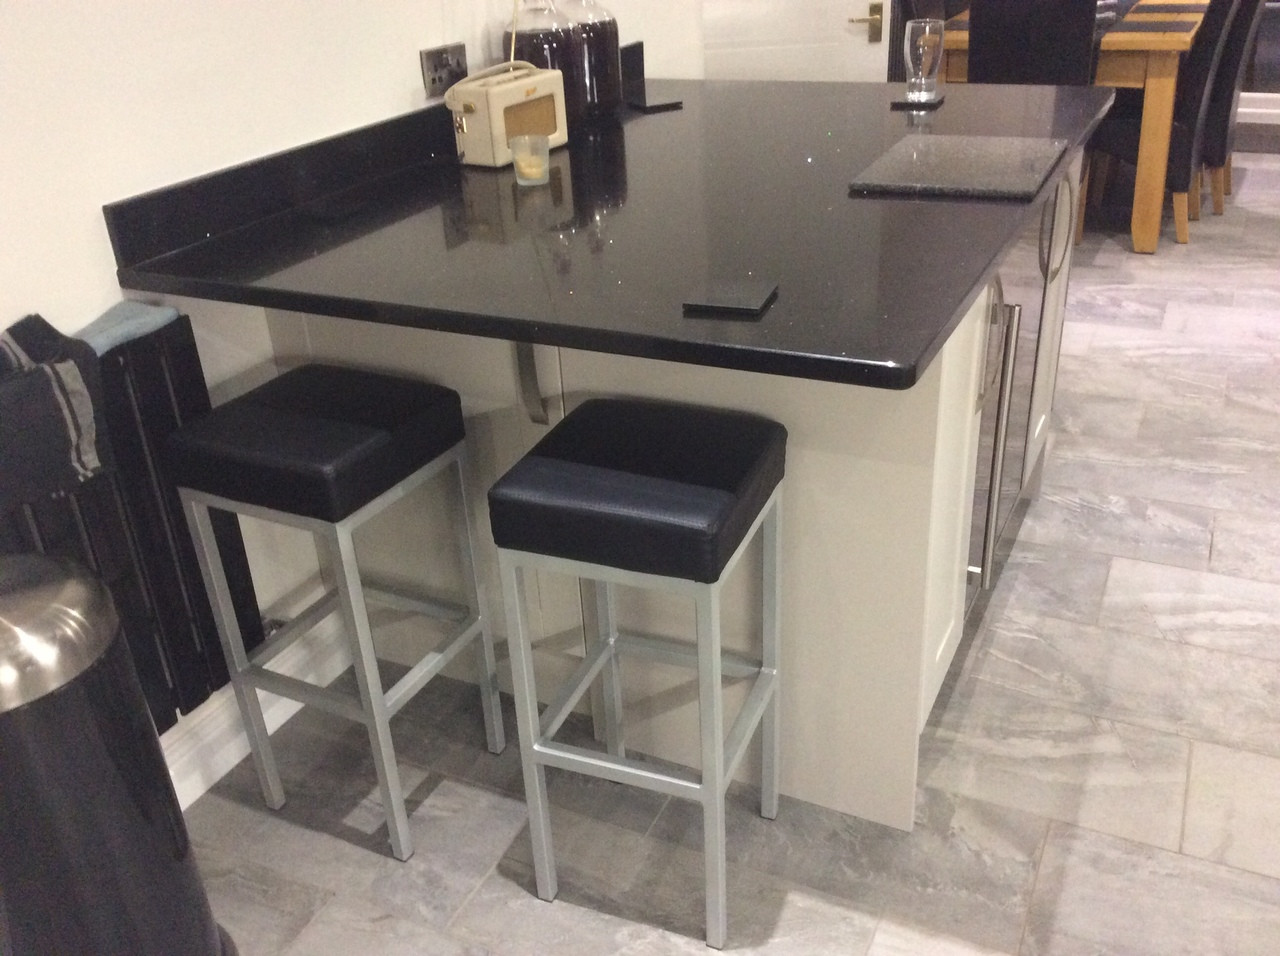 Cube bar stool faux leather black commercial or domestic